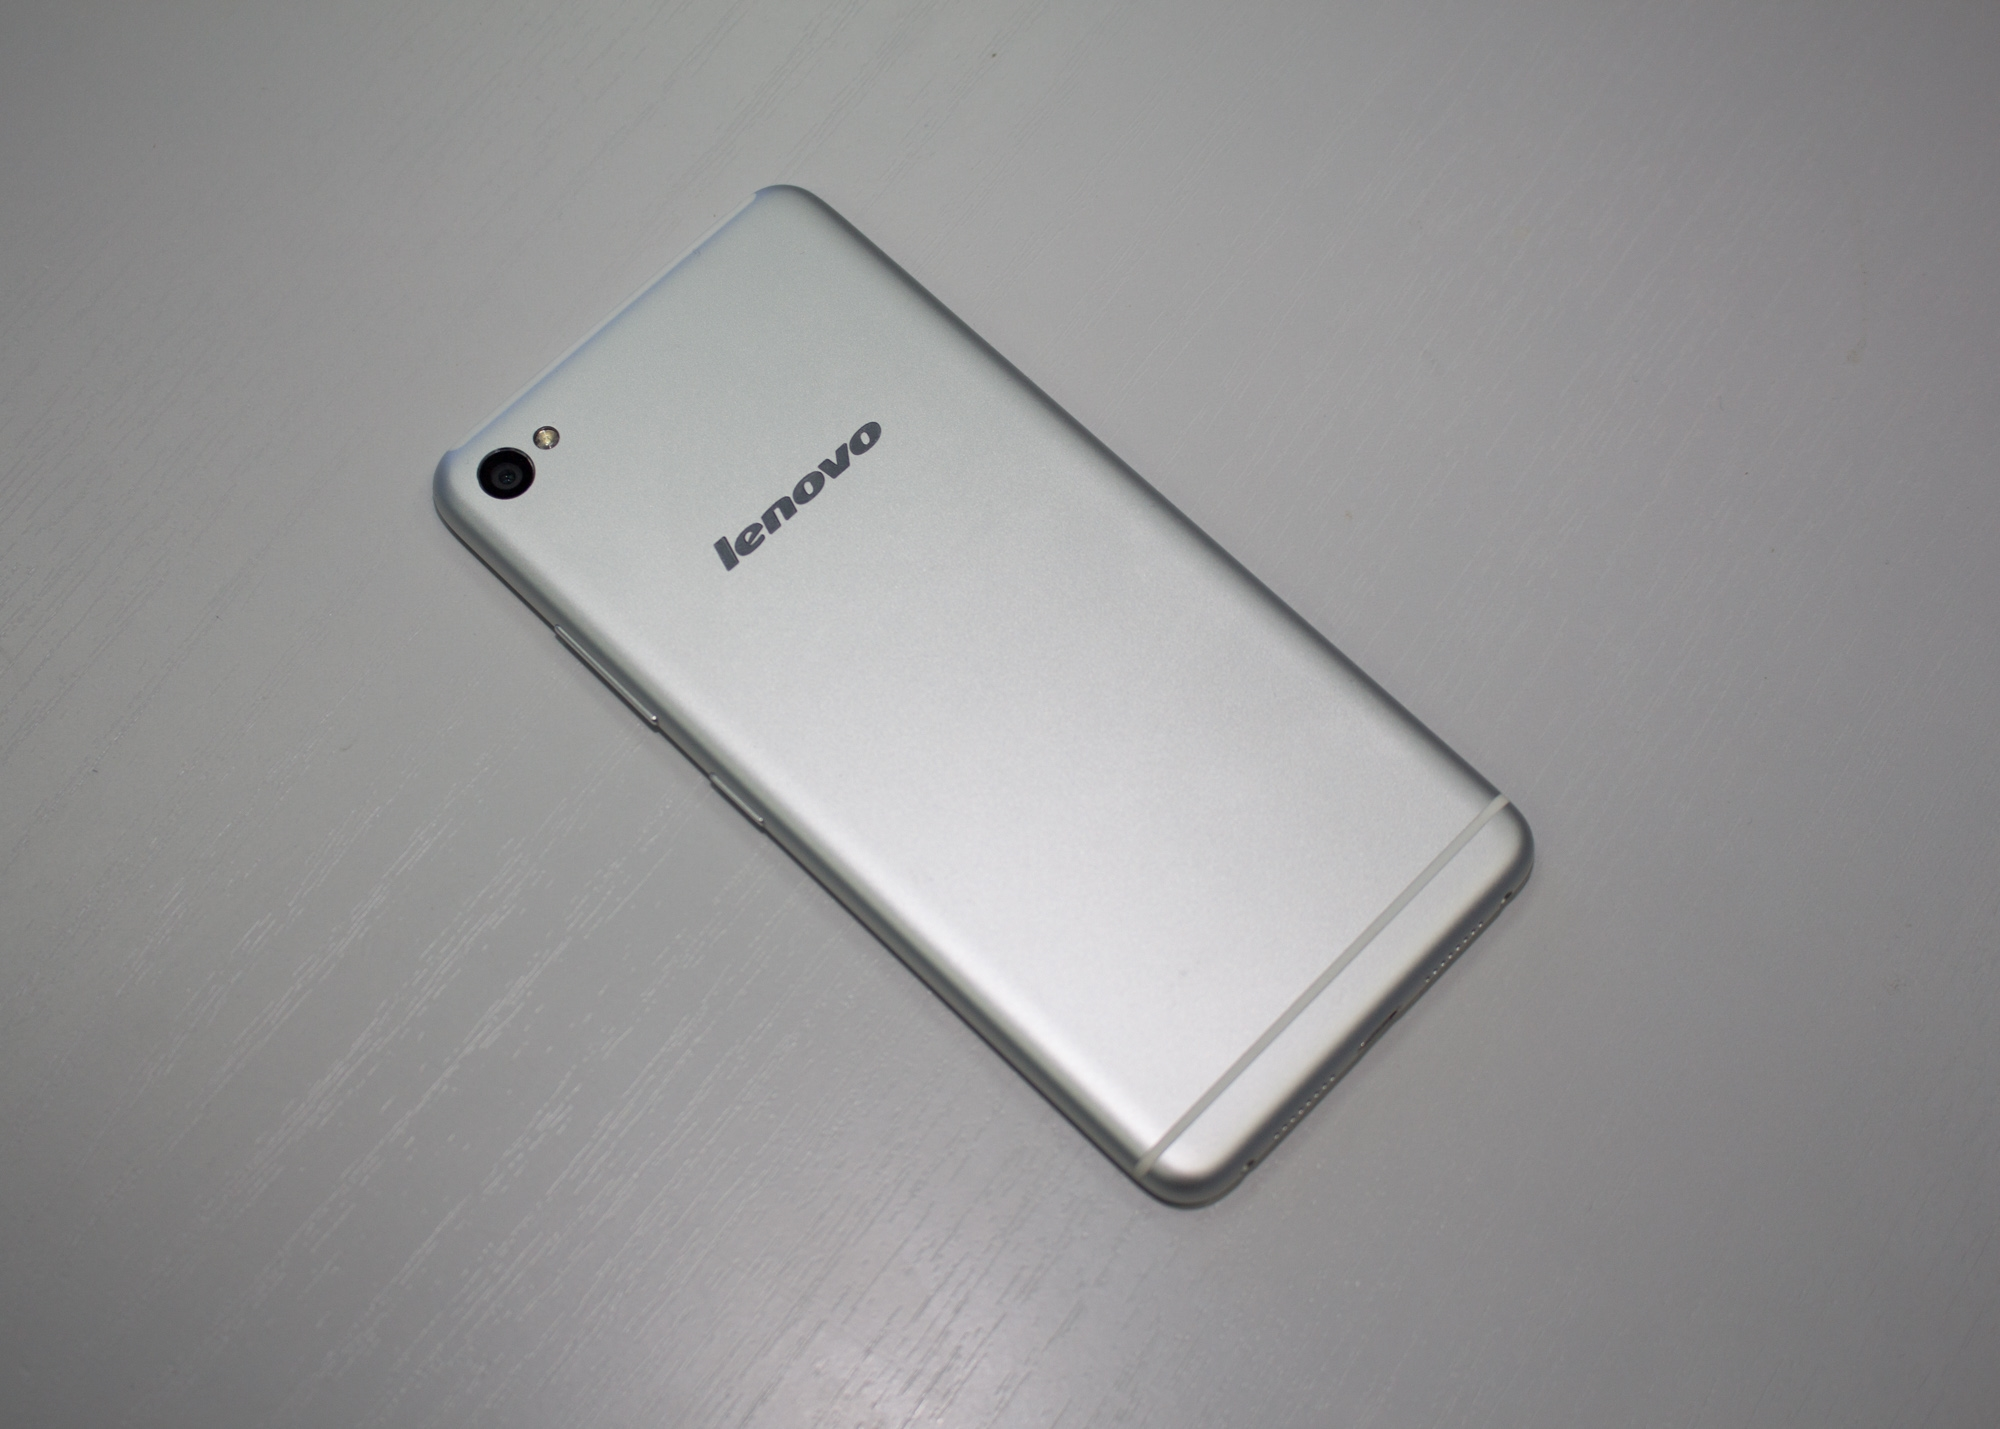 Lenovo S90 Iphone Android S 90 6 16 49 32 20